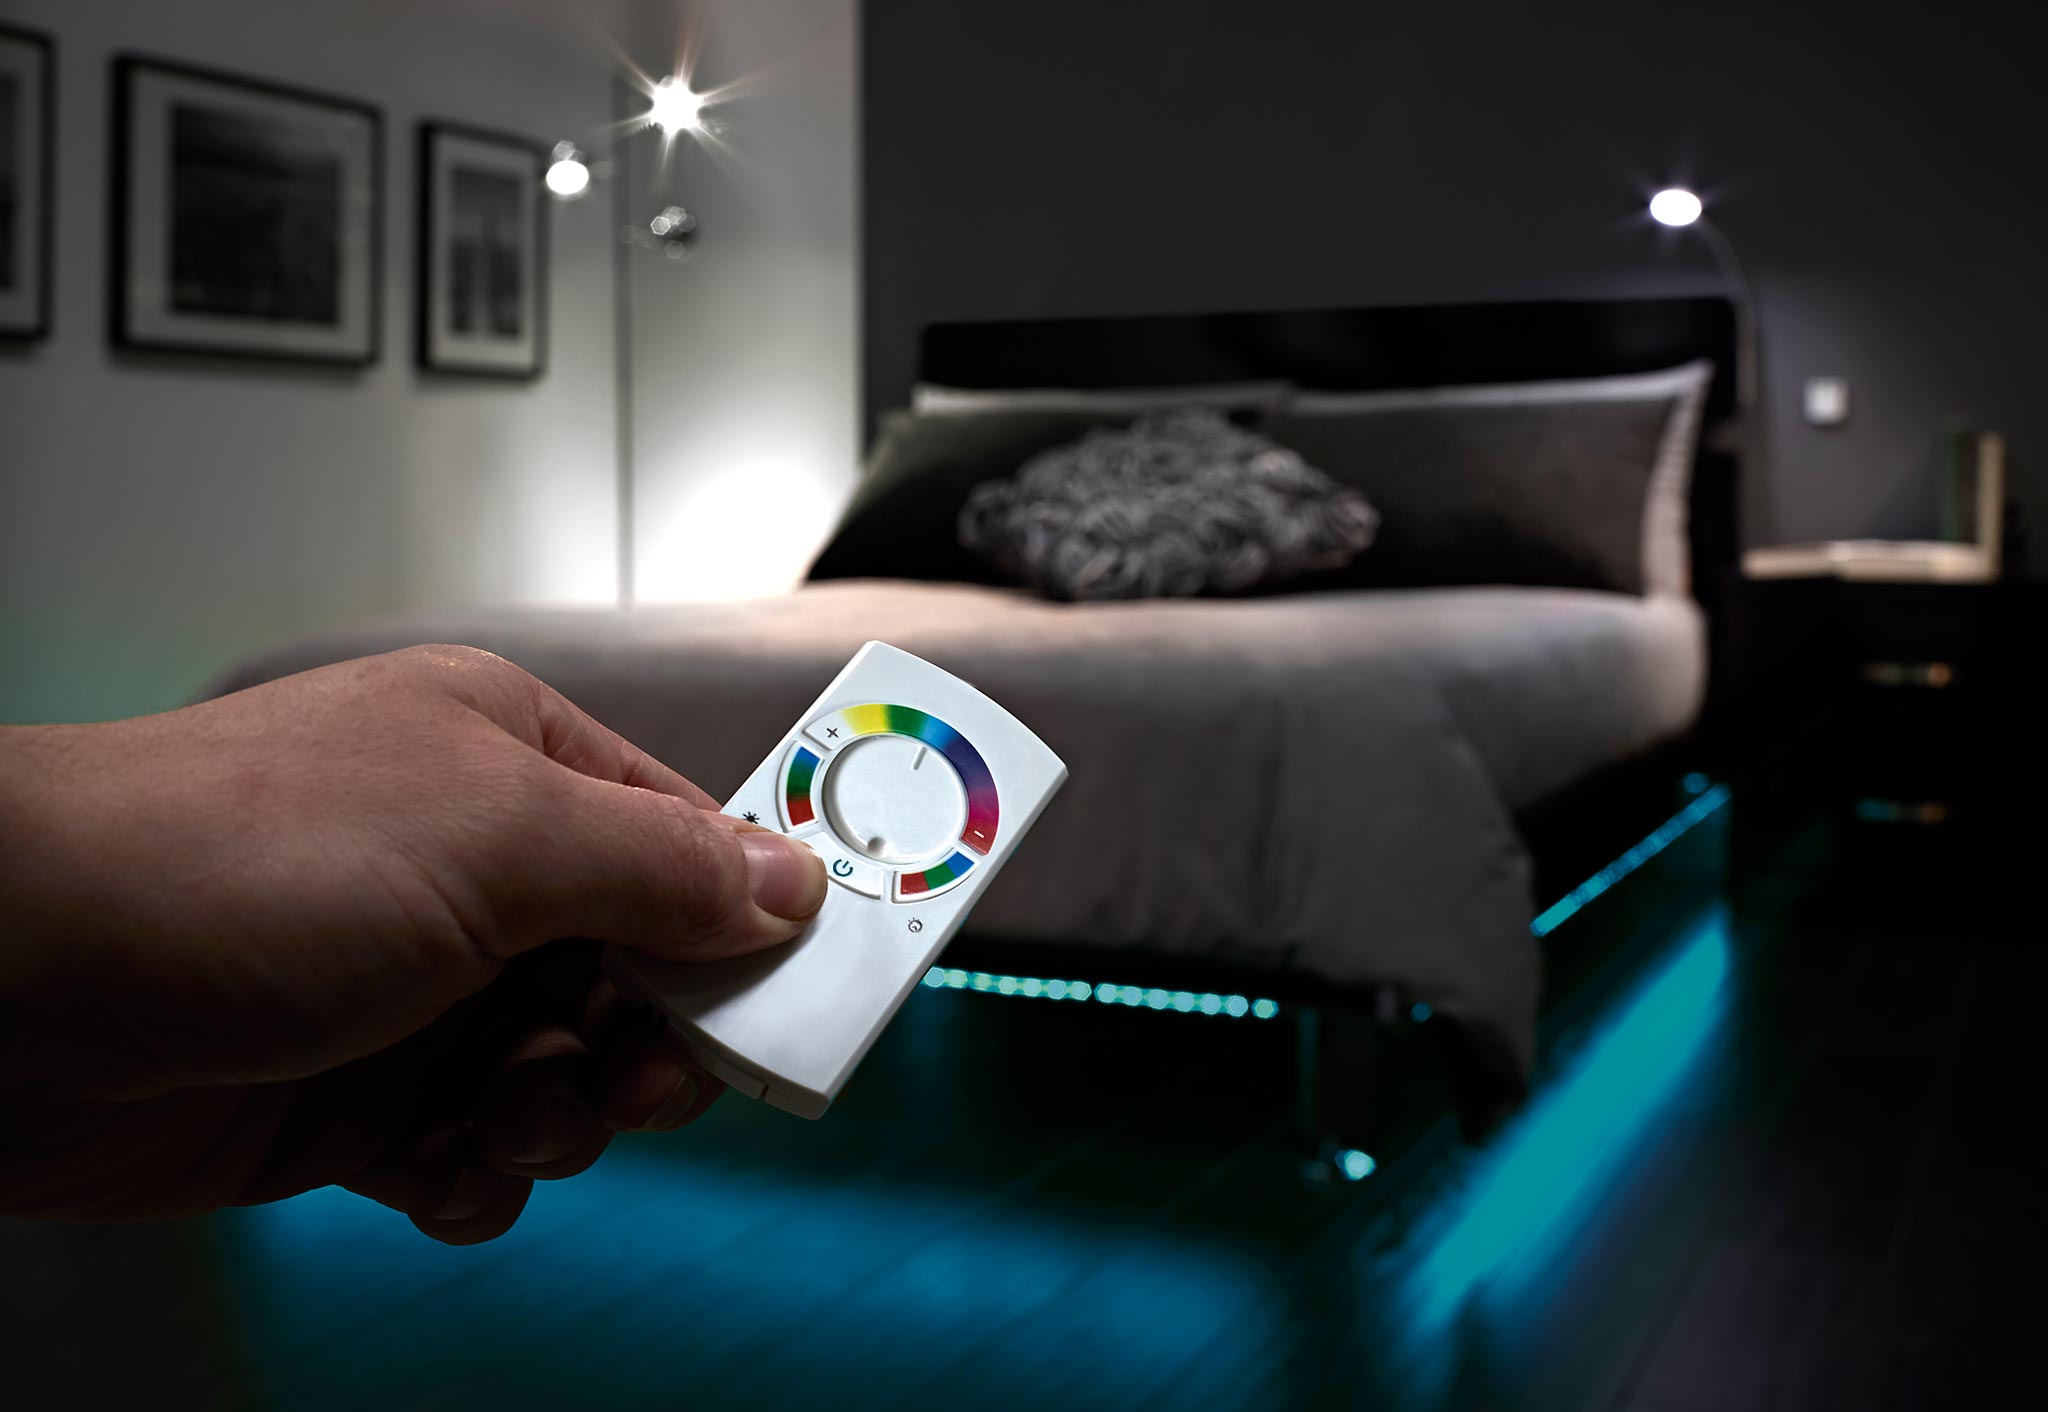 Sensio RGB Colour Changing LED Strip Lighting with Sensio RGB remote control.